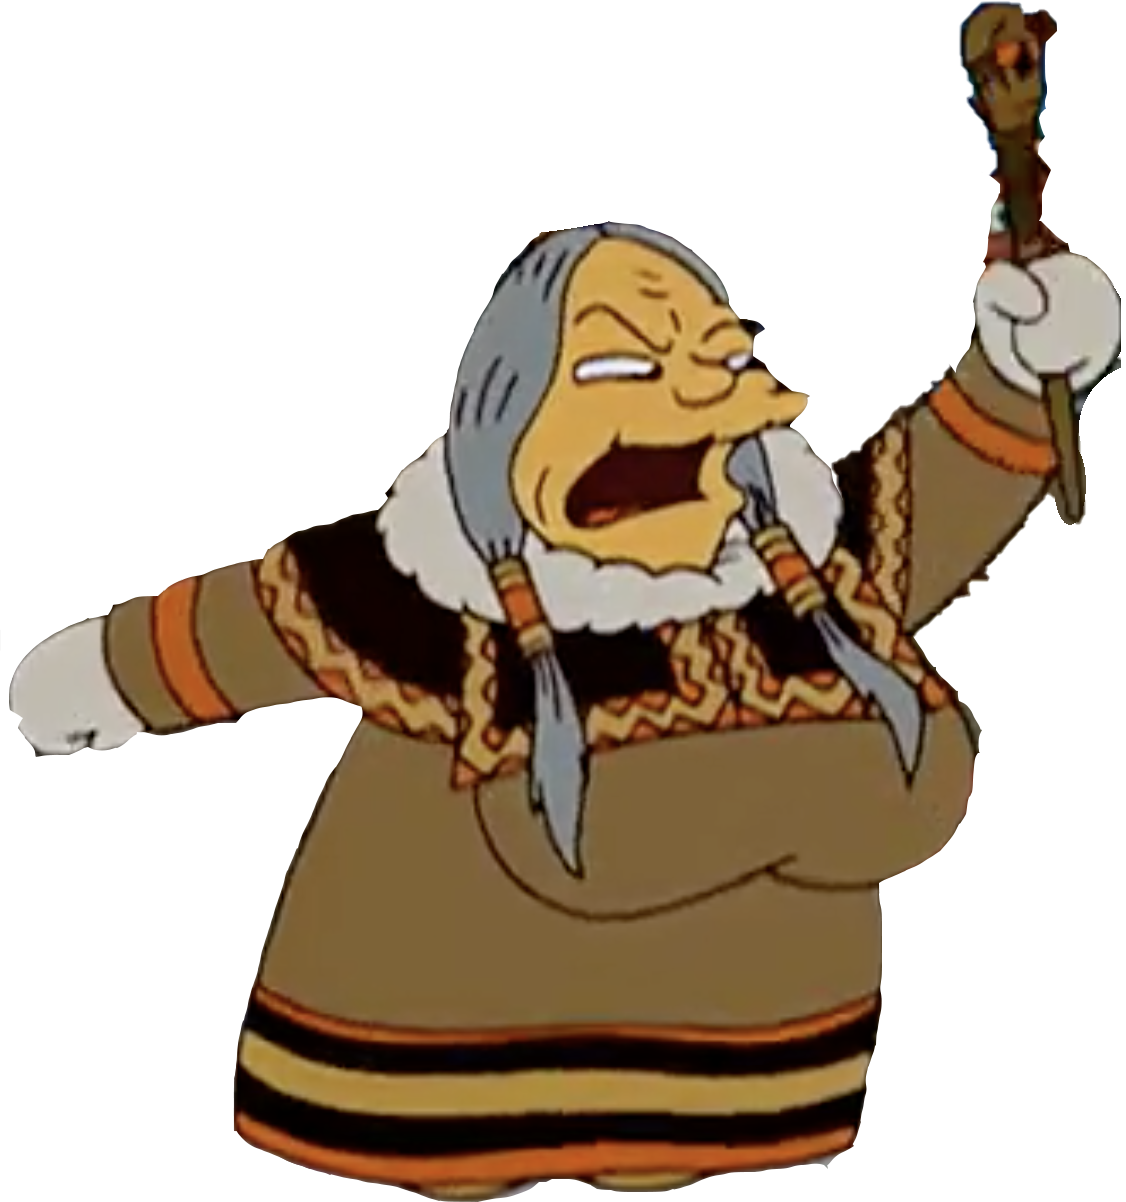 Medicine Woman The Simpsons Wiki Fandom